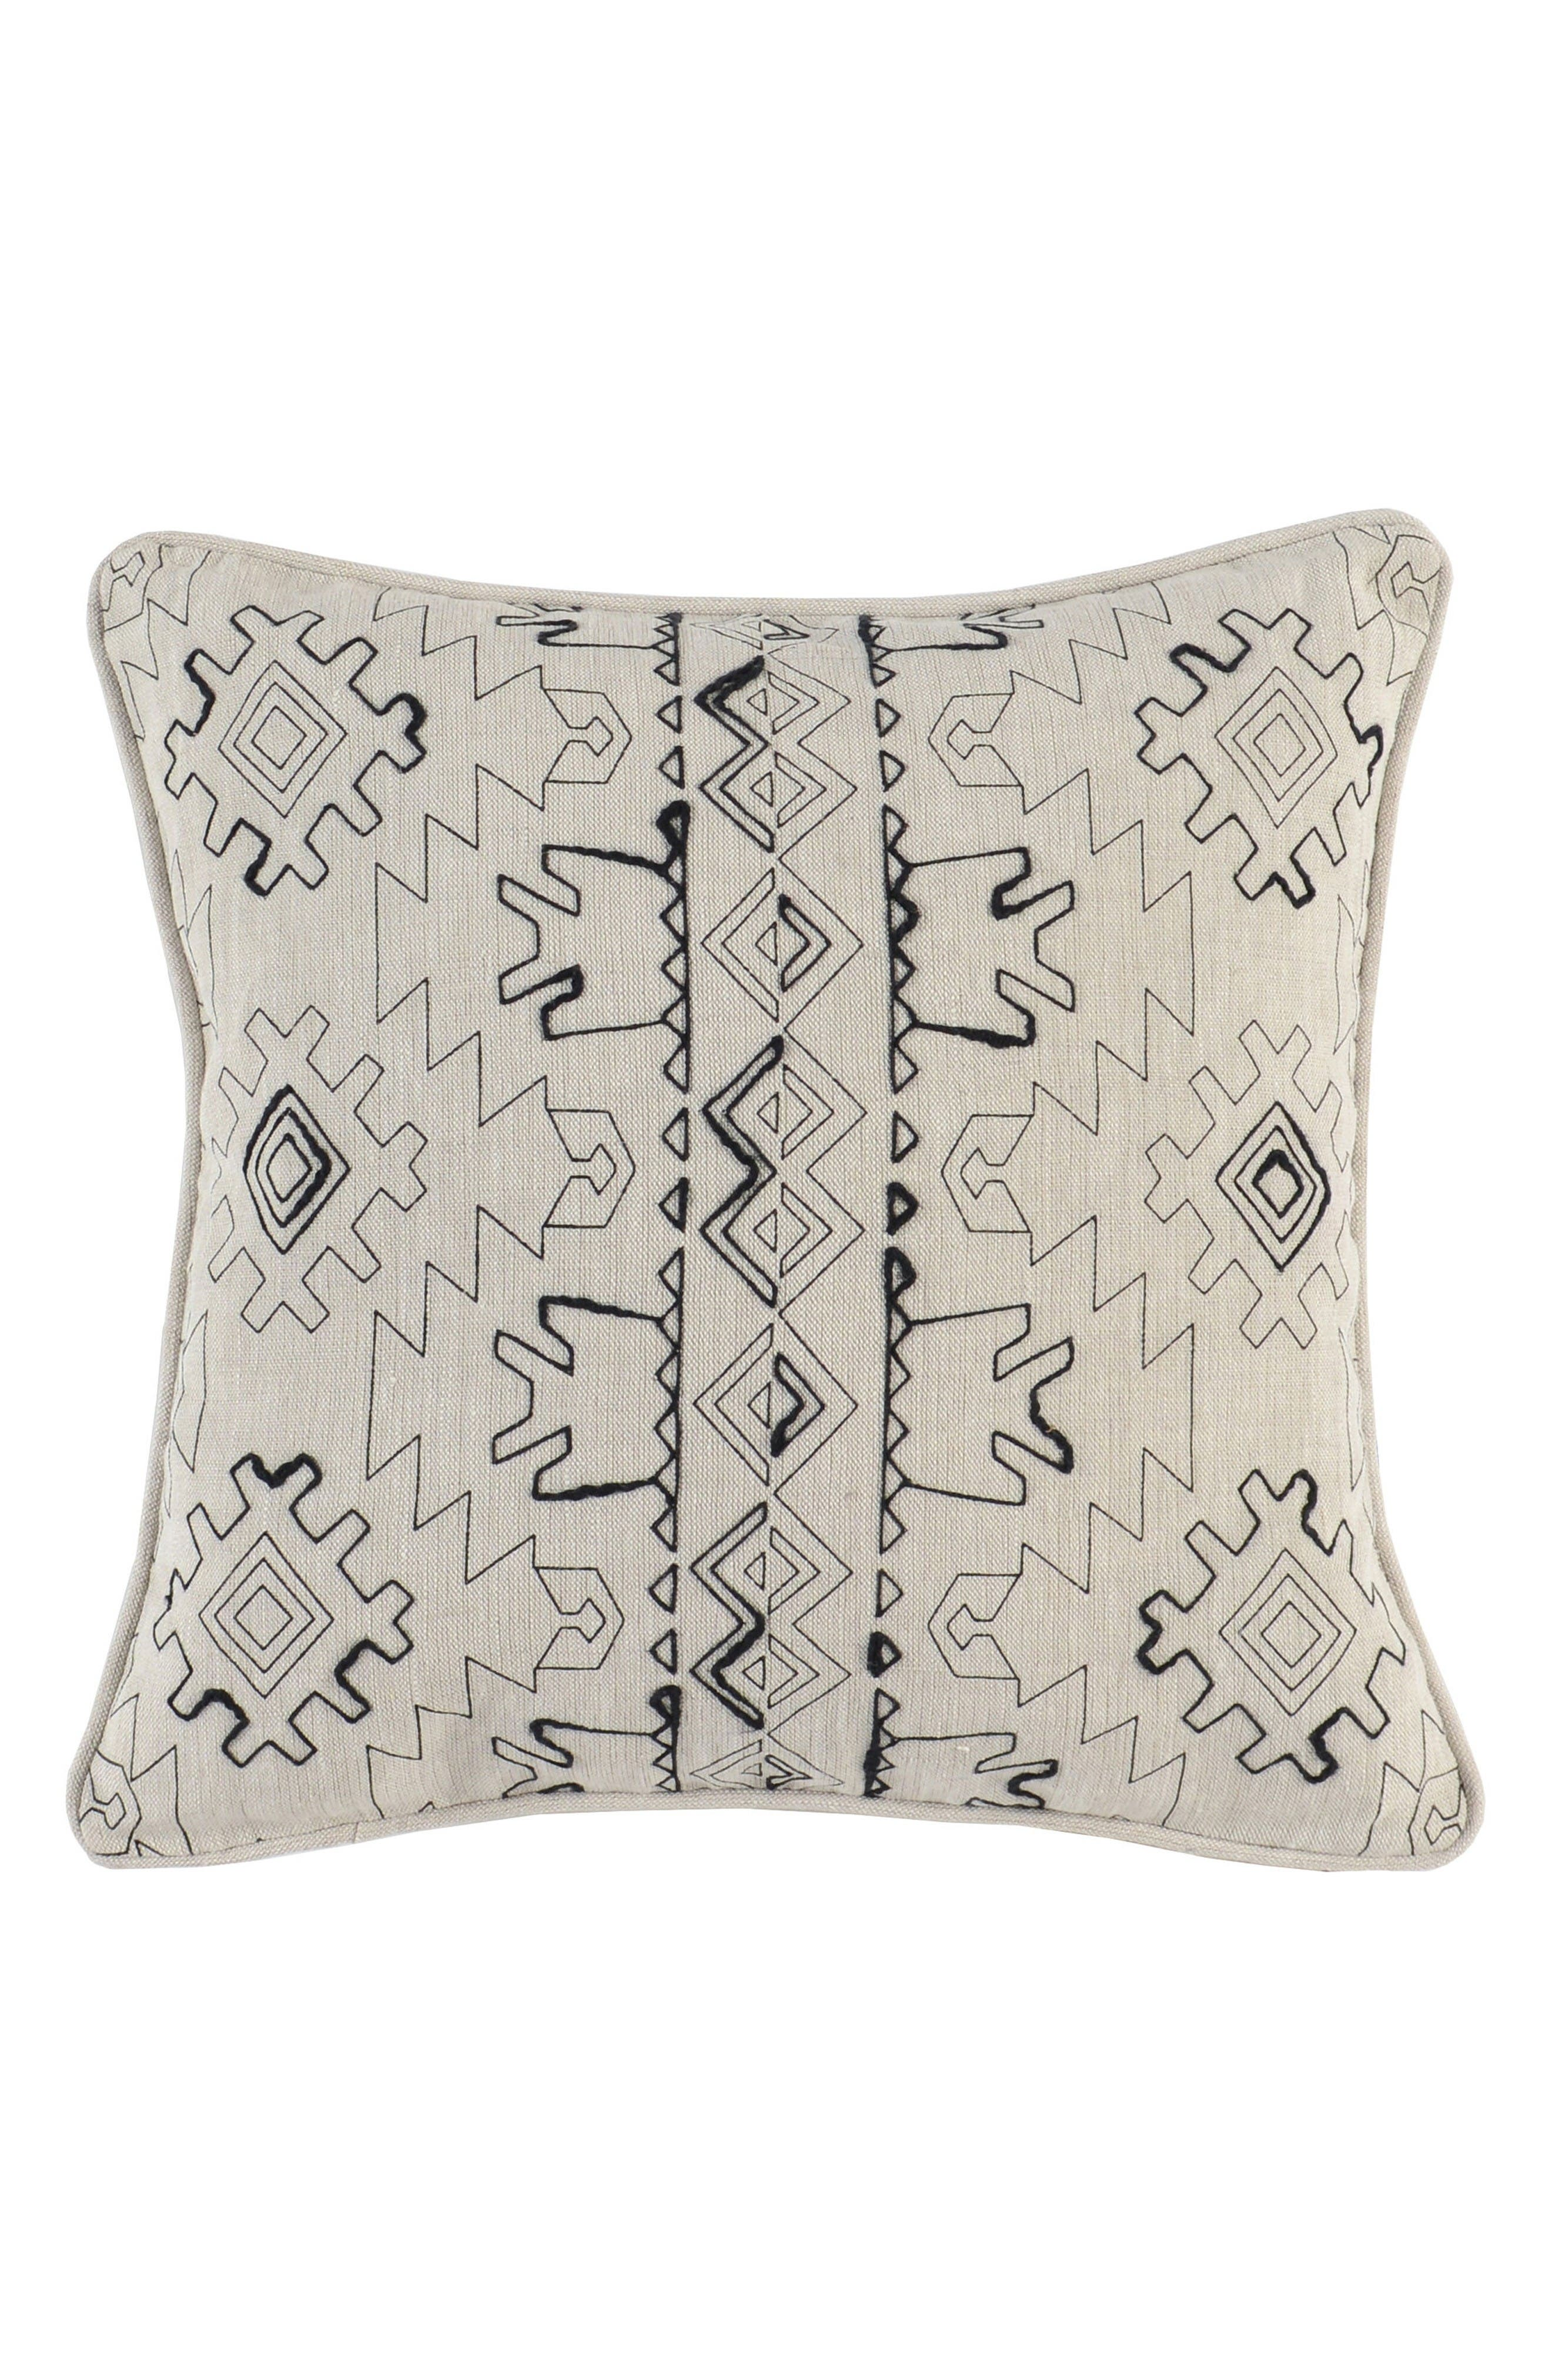 Hawley Accent Pillow,                             Main thumbnail 1, color,                             Ivory/ Onyx